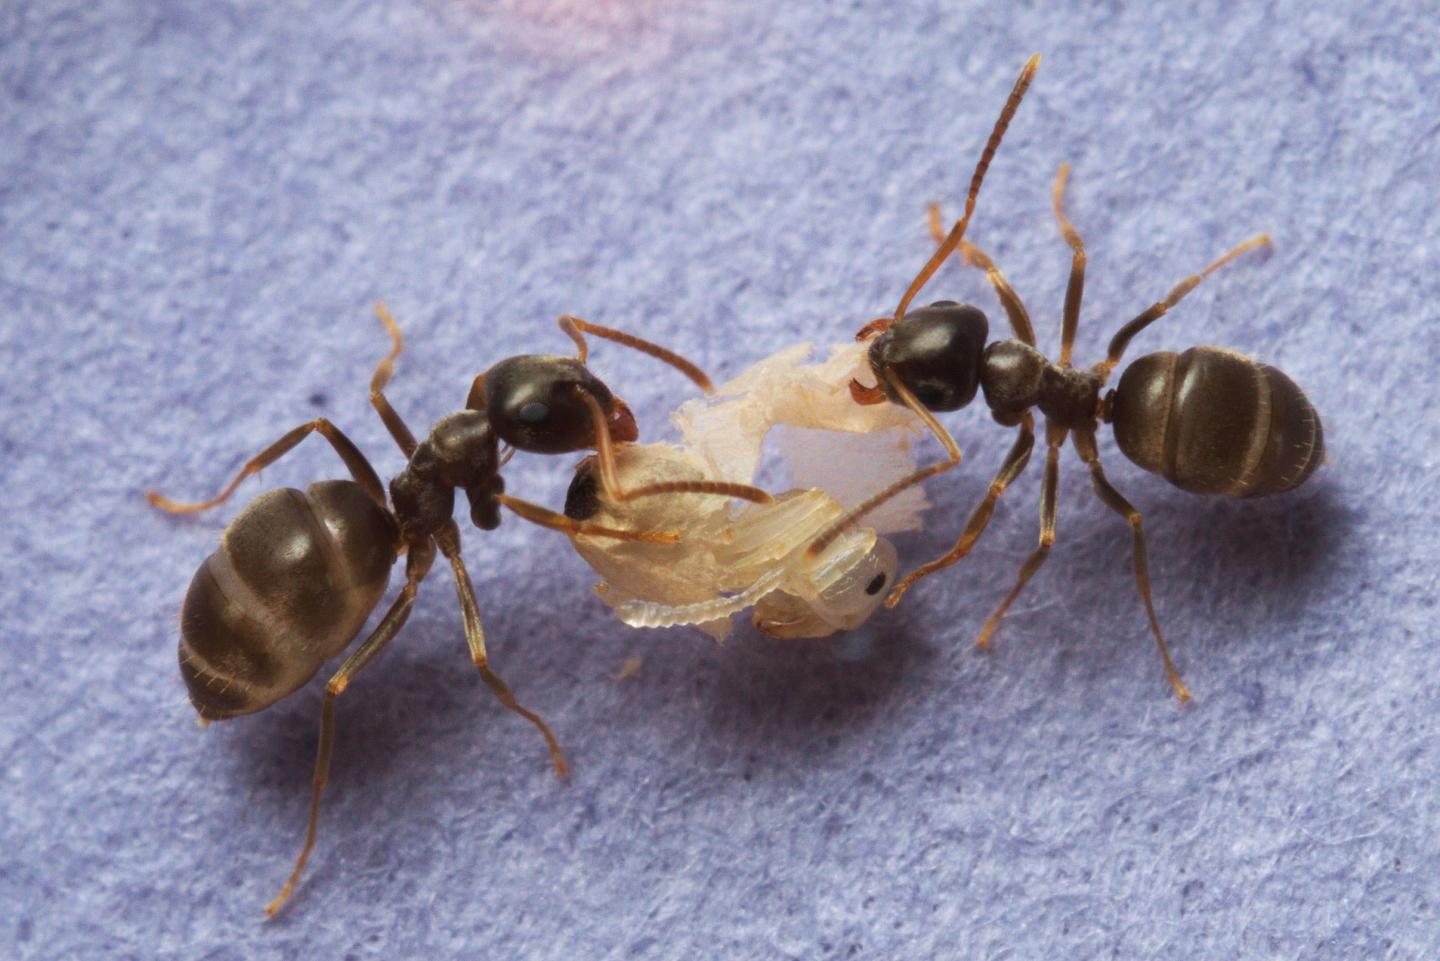 Ants Preventing an Epidemic